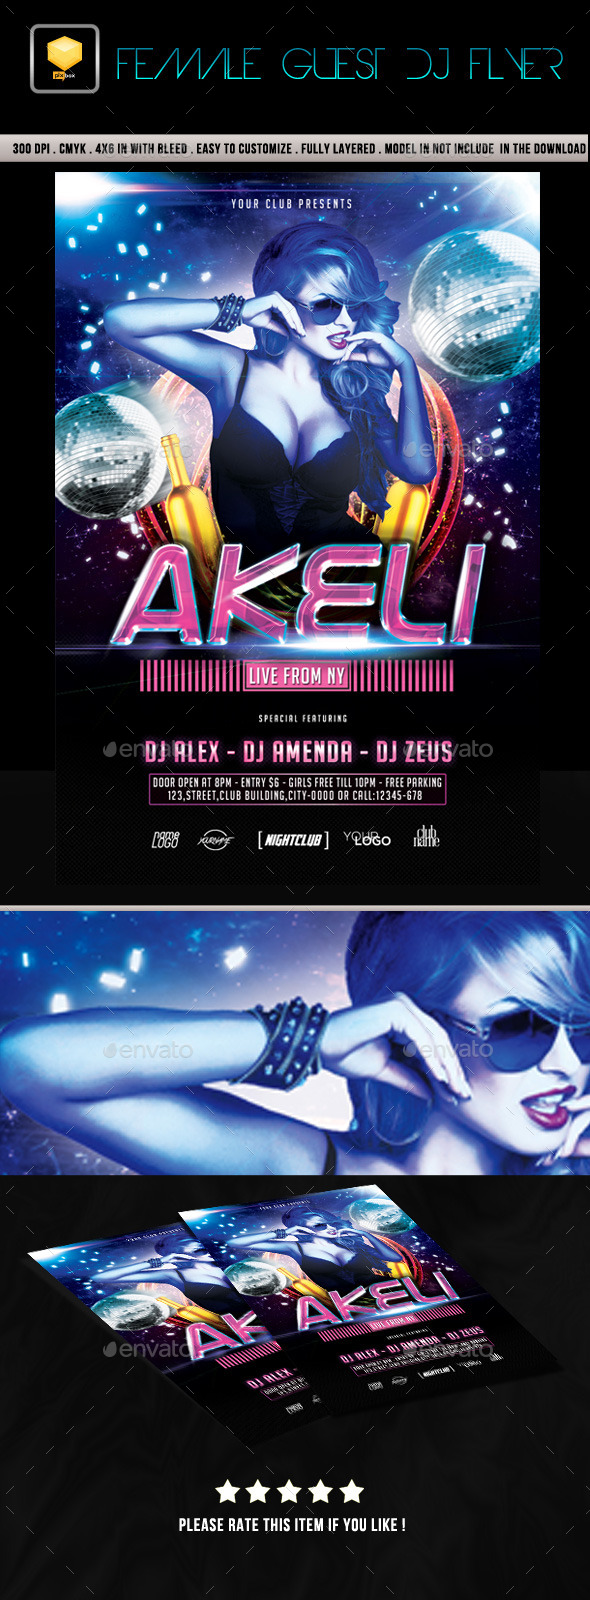 Female Guest DJ Flyer - Clubs & Parties Events